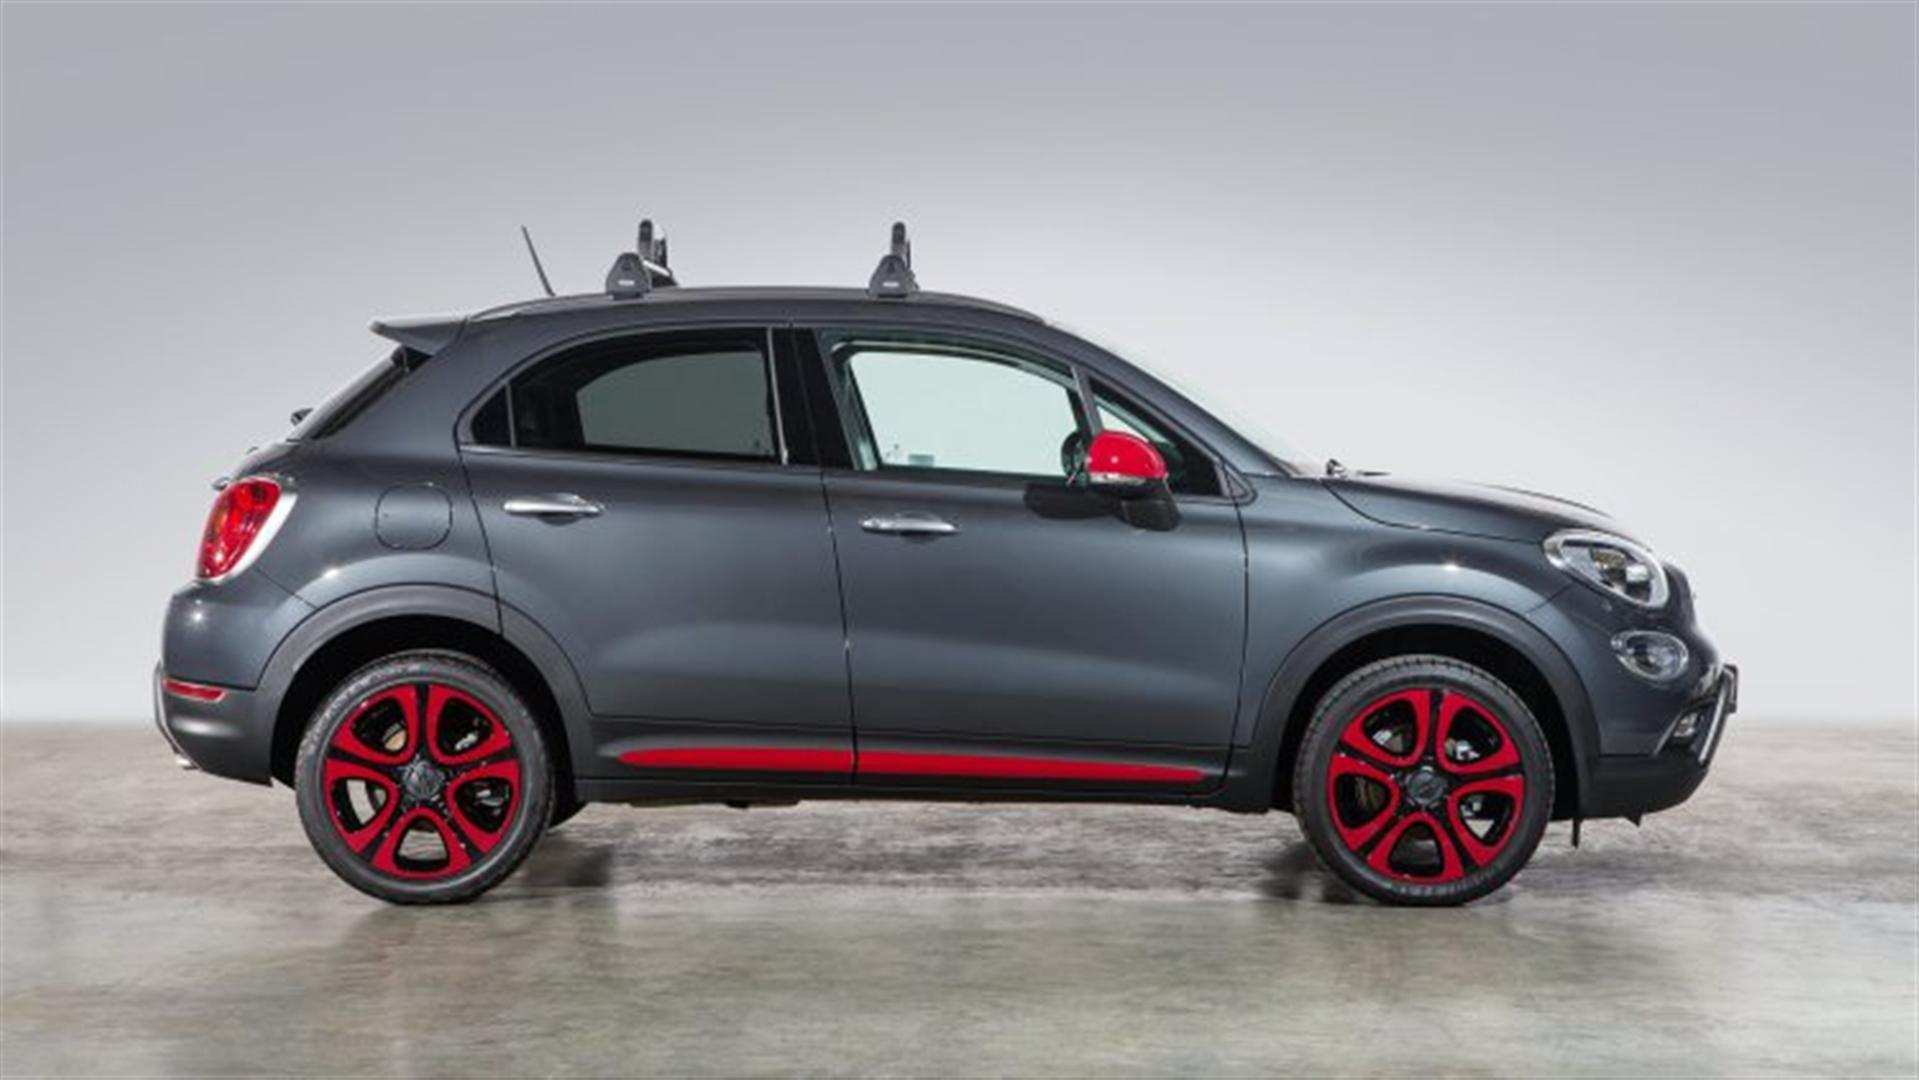 30 All New Fiat Suv 2020 New Concept for Fiat Suv 2020